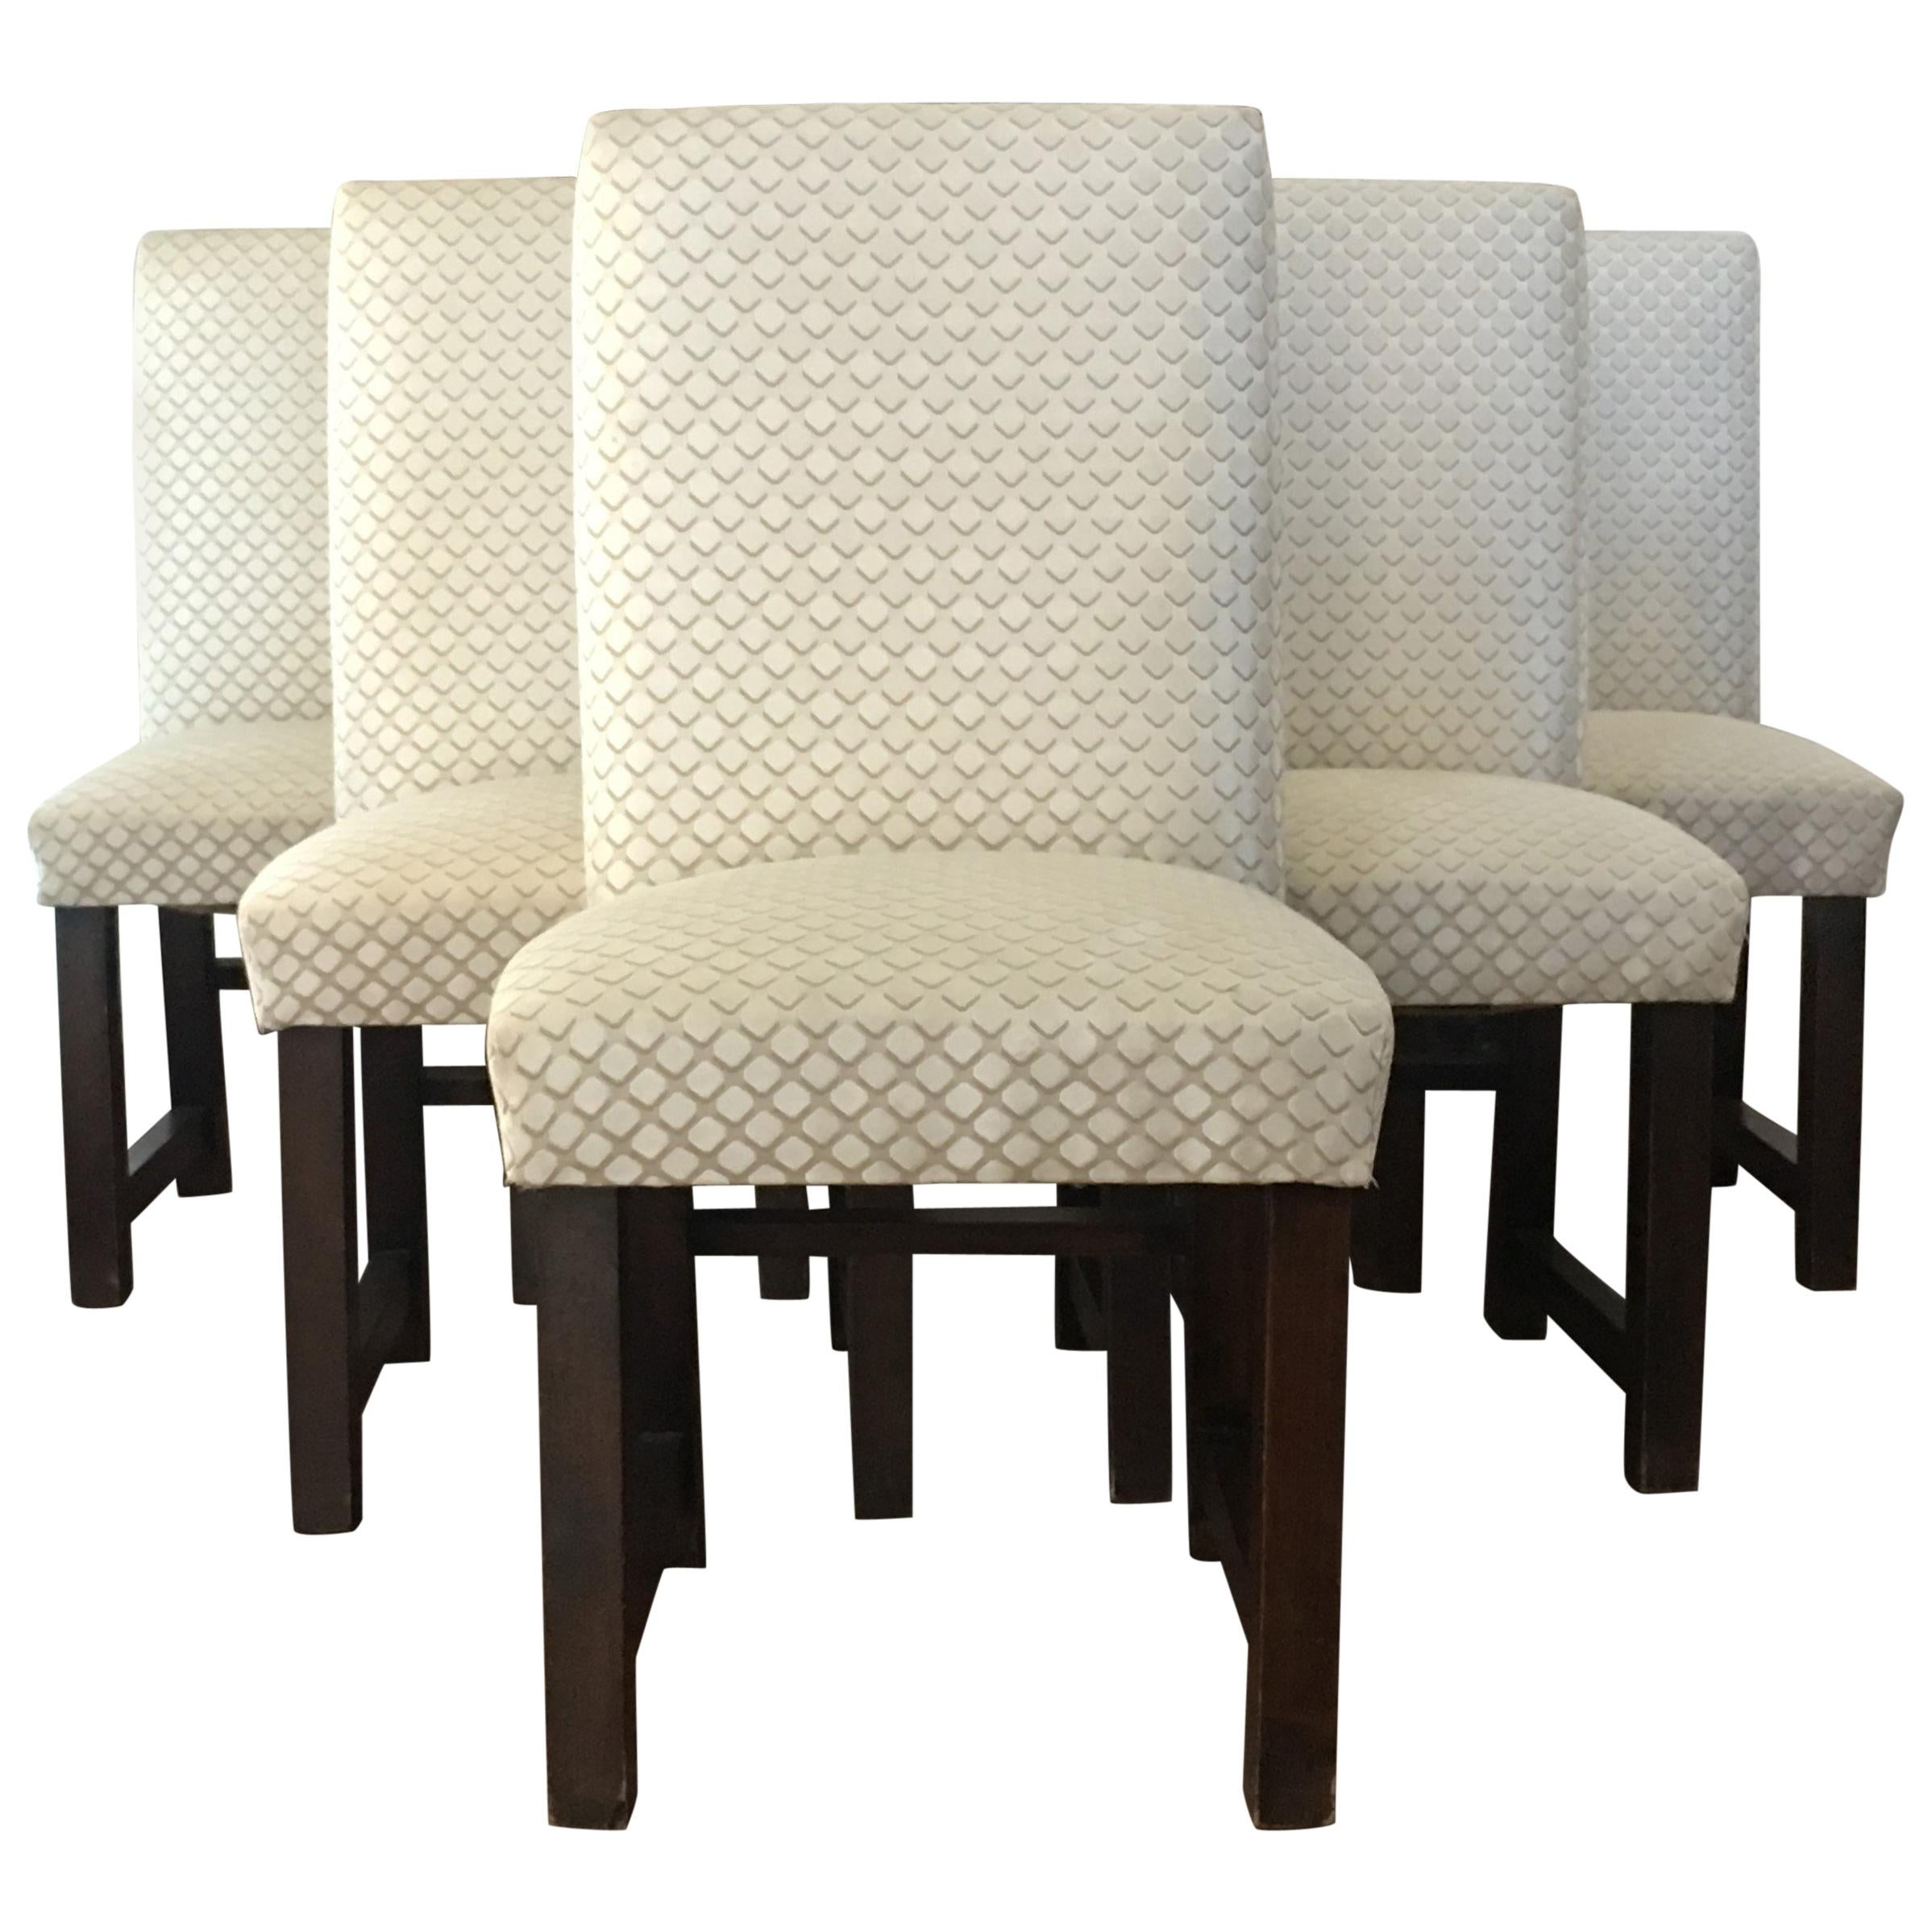 dining chair upholstery custom gaming set of six art deco chairs with new by lizzo italy for sale